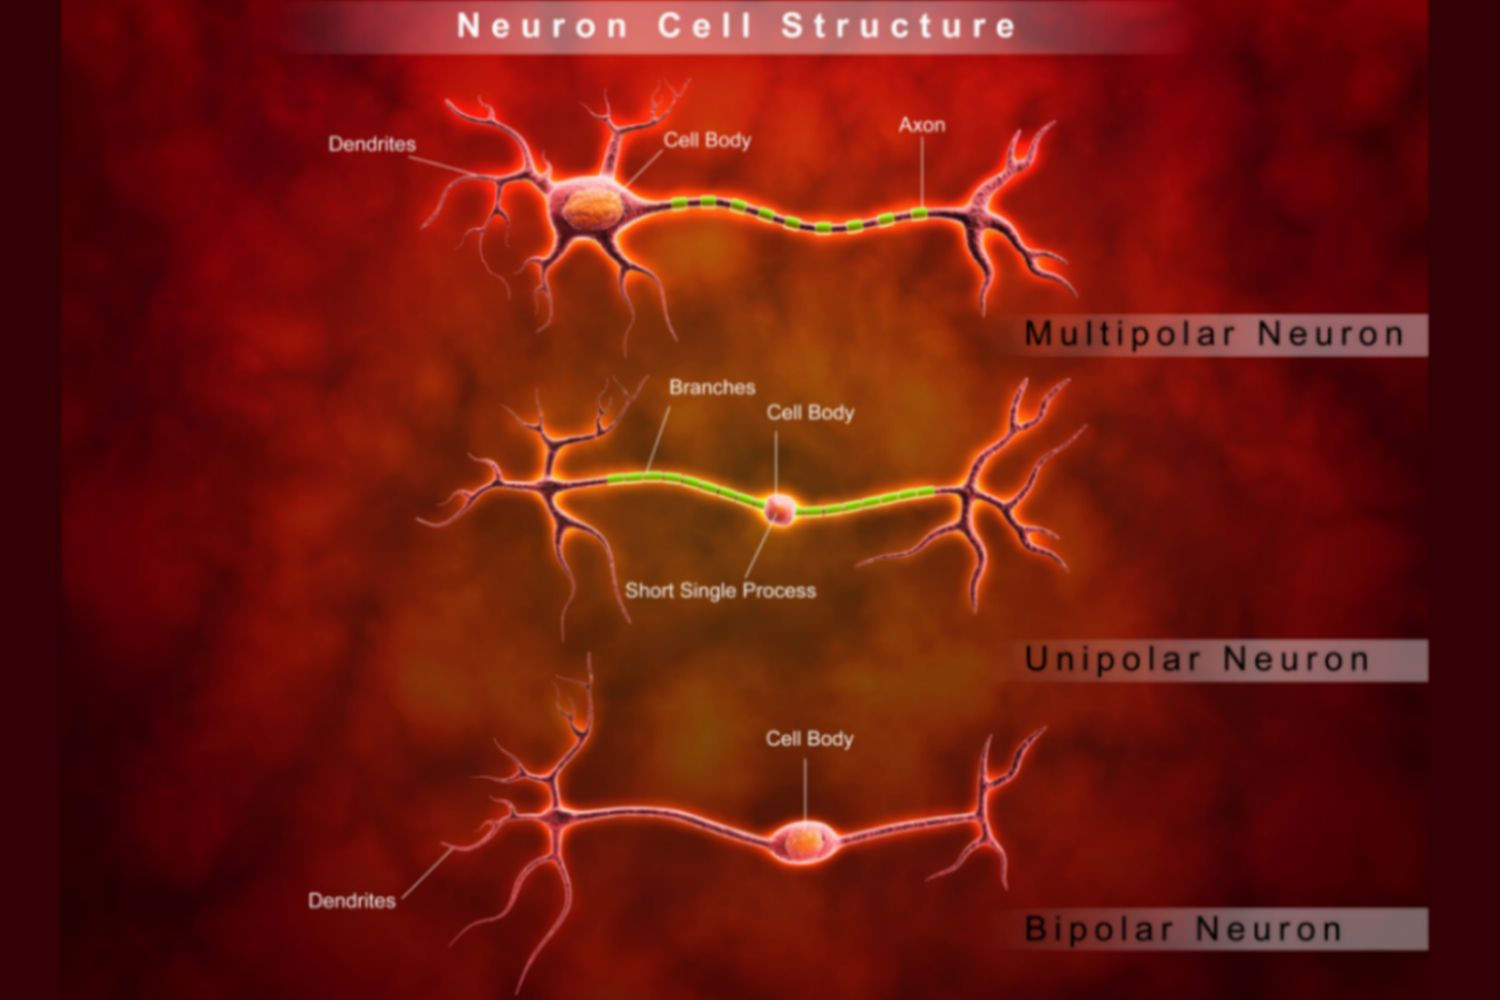 hight resolution of diagrams of neuron cell structure